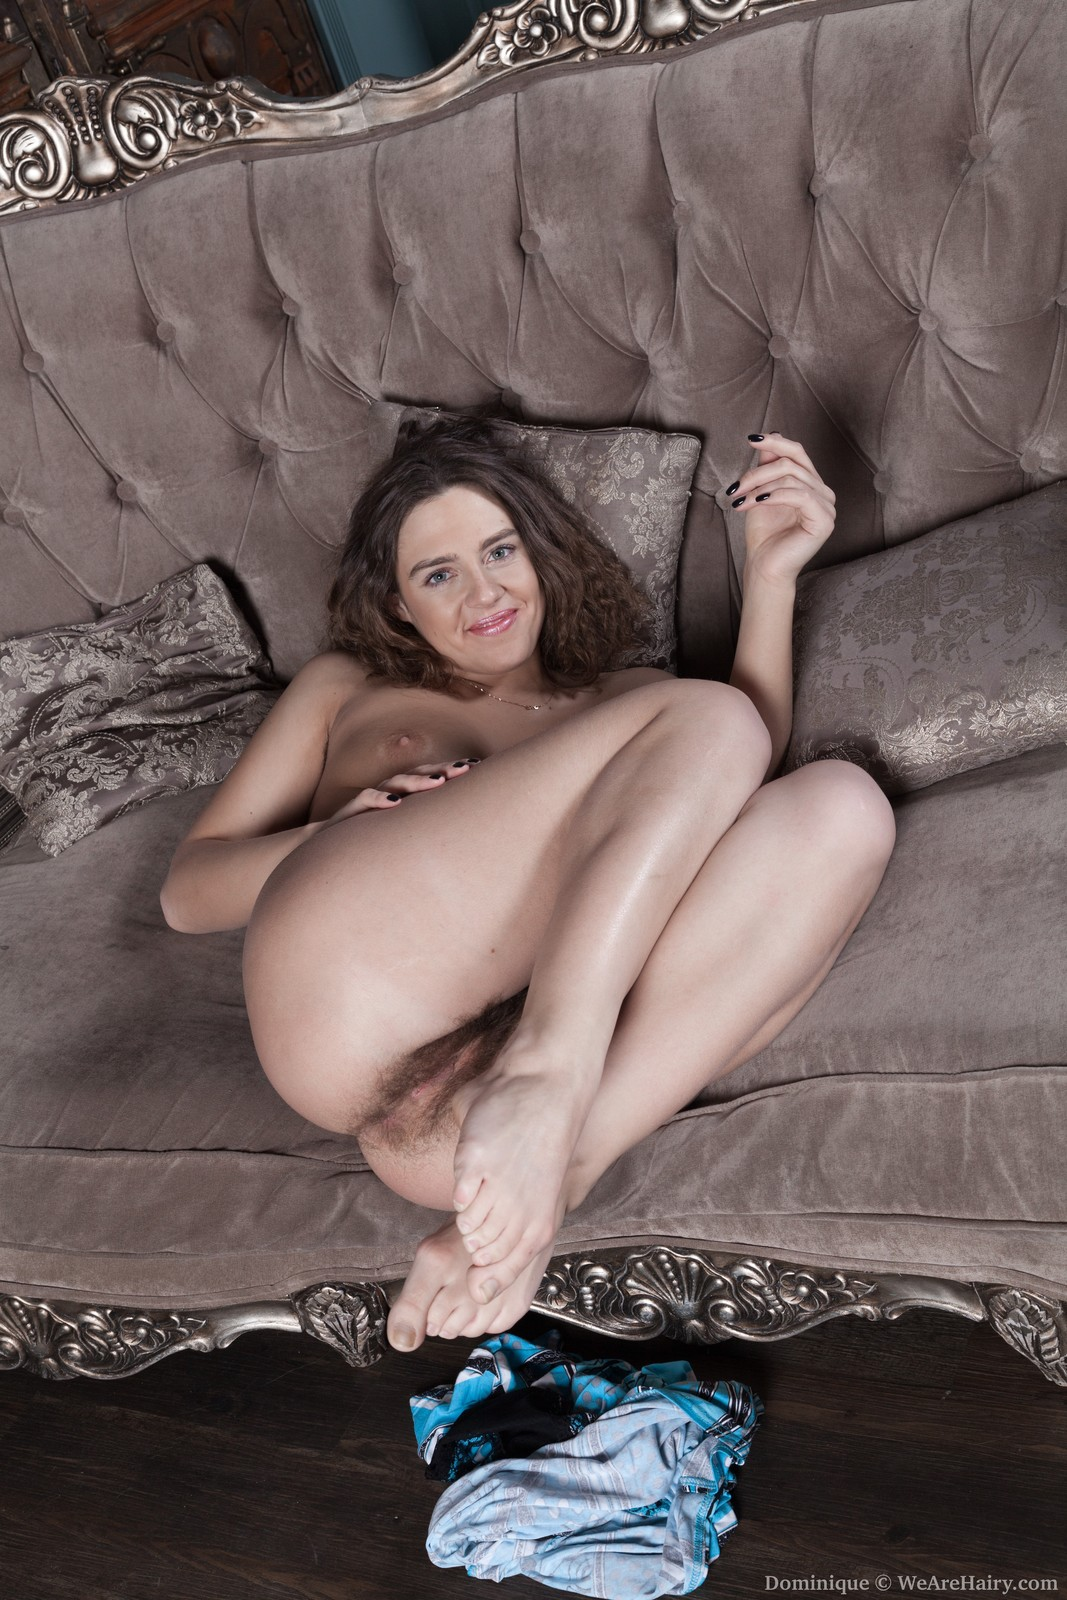 dominique-touches-her-hairy-body-on-a-couch16.jpg